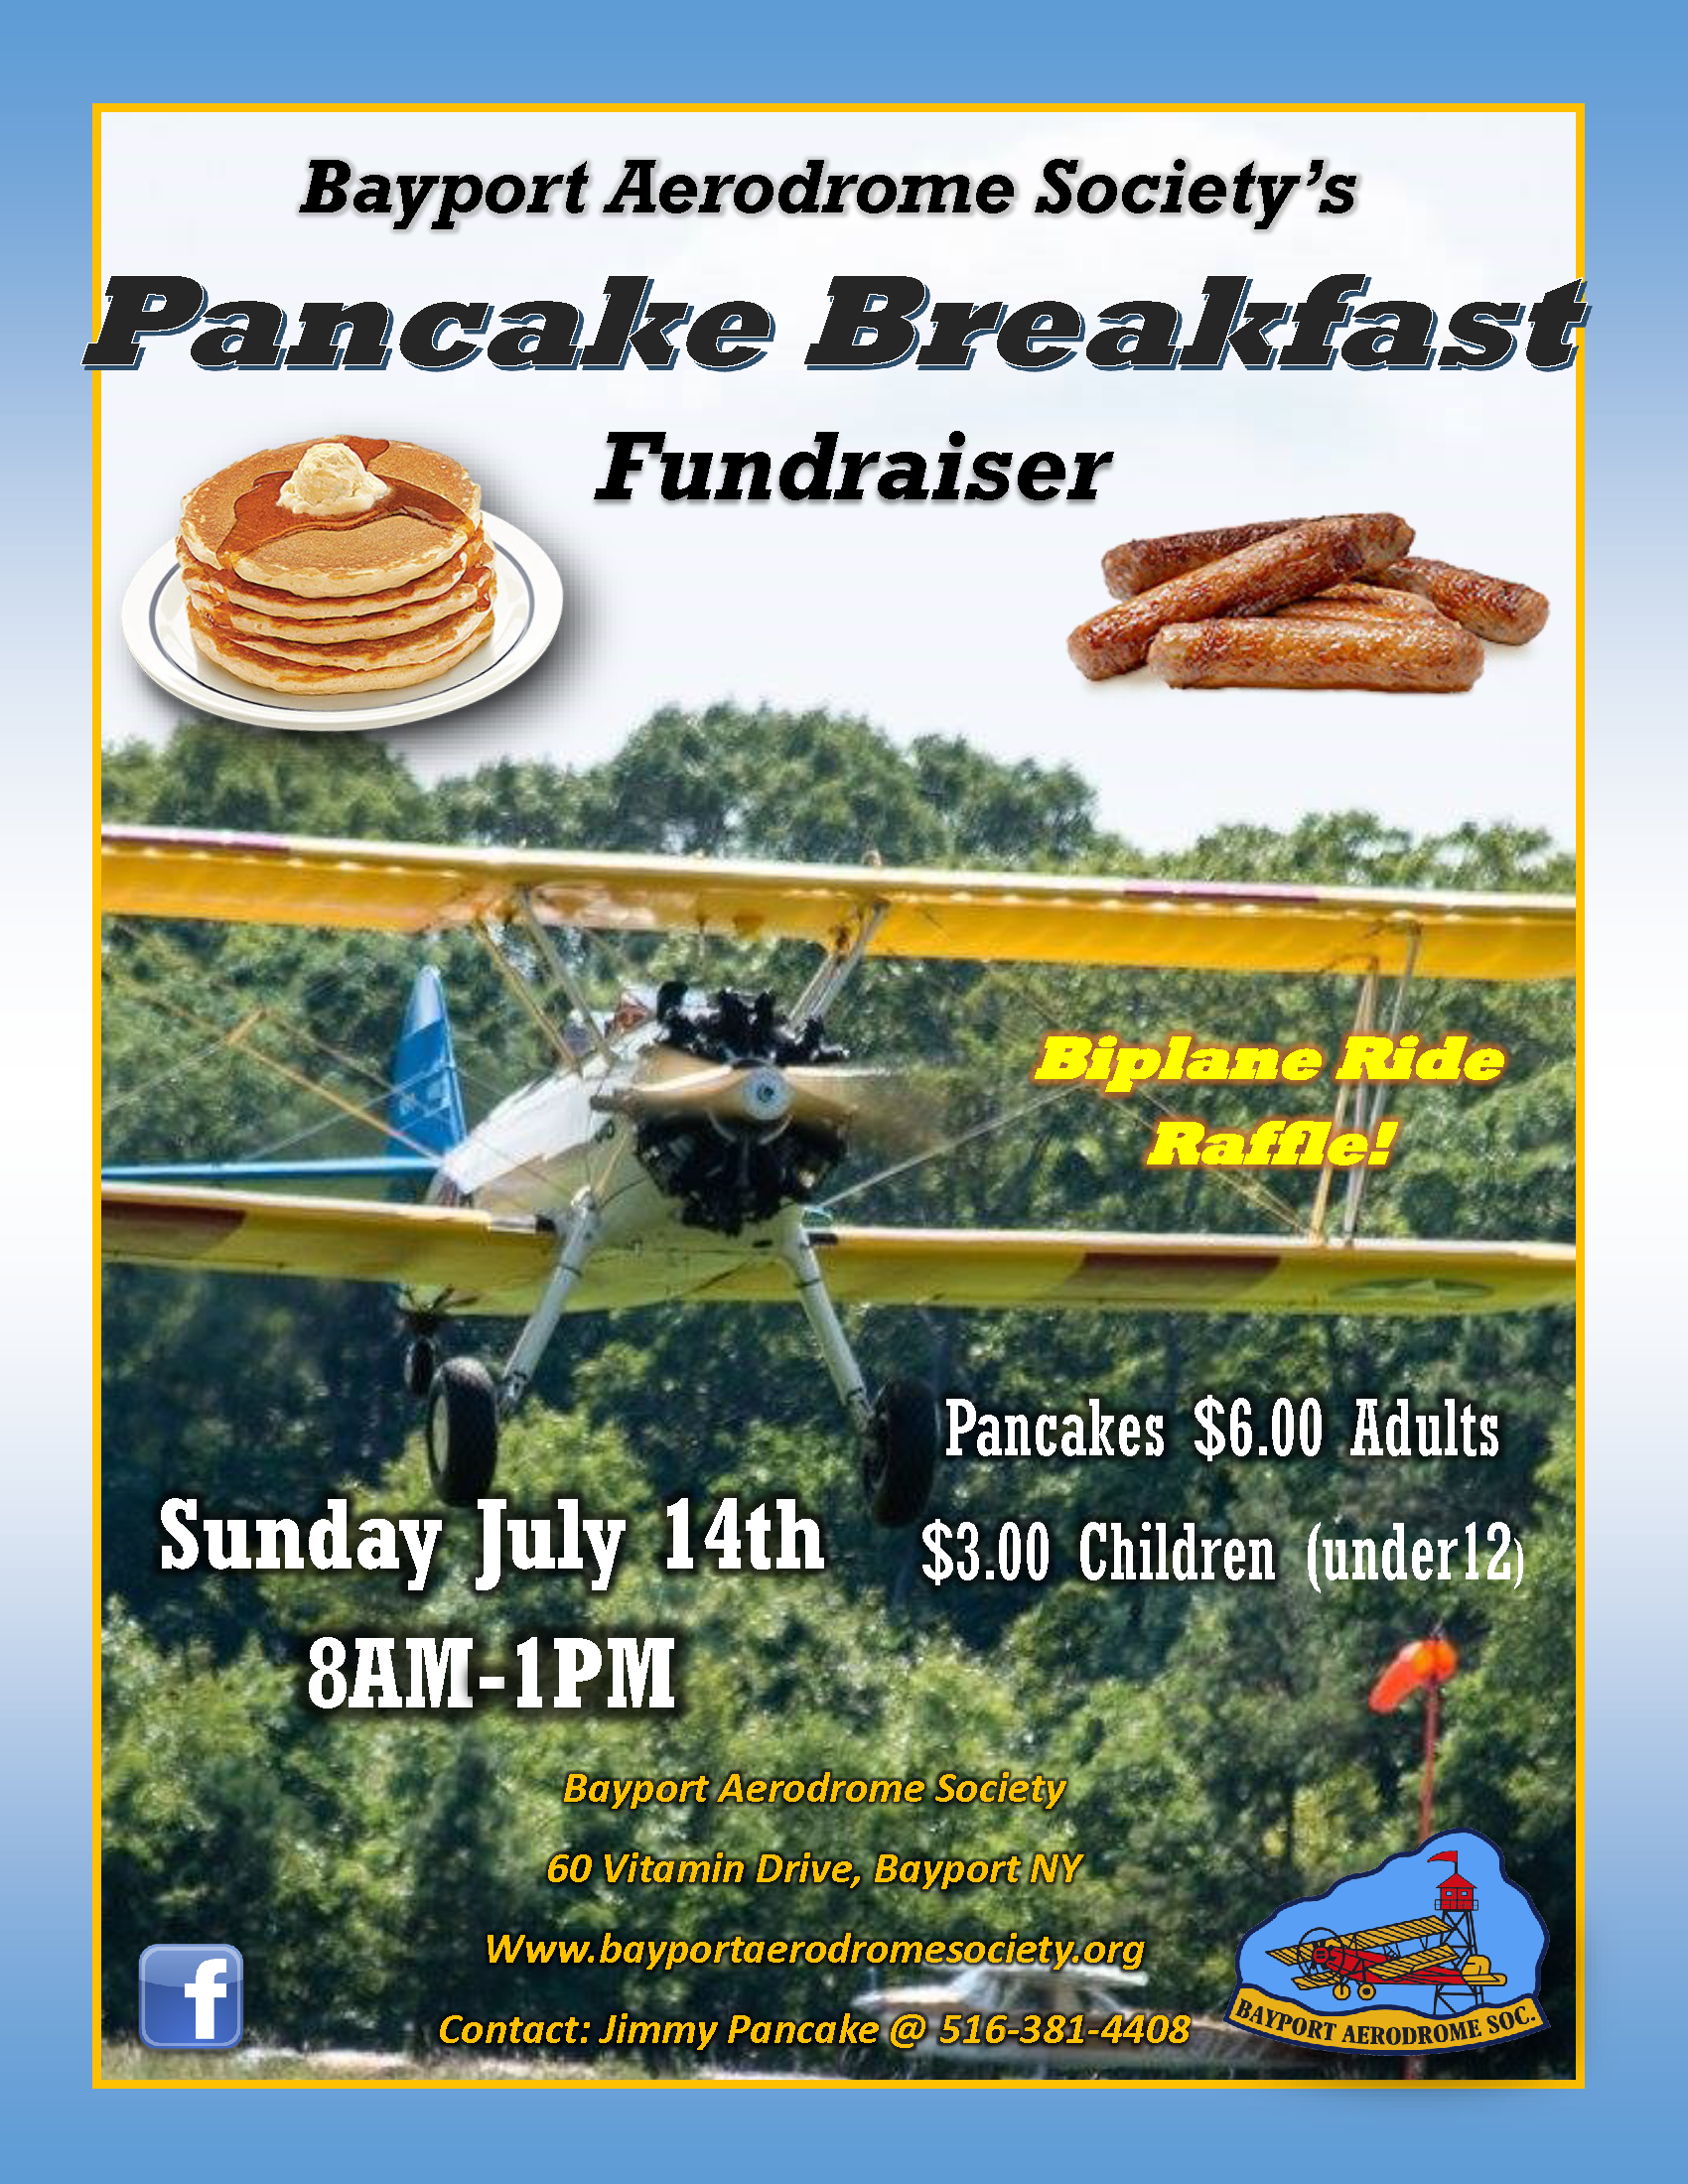 a picture of a propeller plane flying above the tree line, announcing the Pancake breakfast fundraiser. Call 516-381-4408, for more information